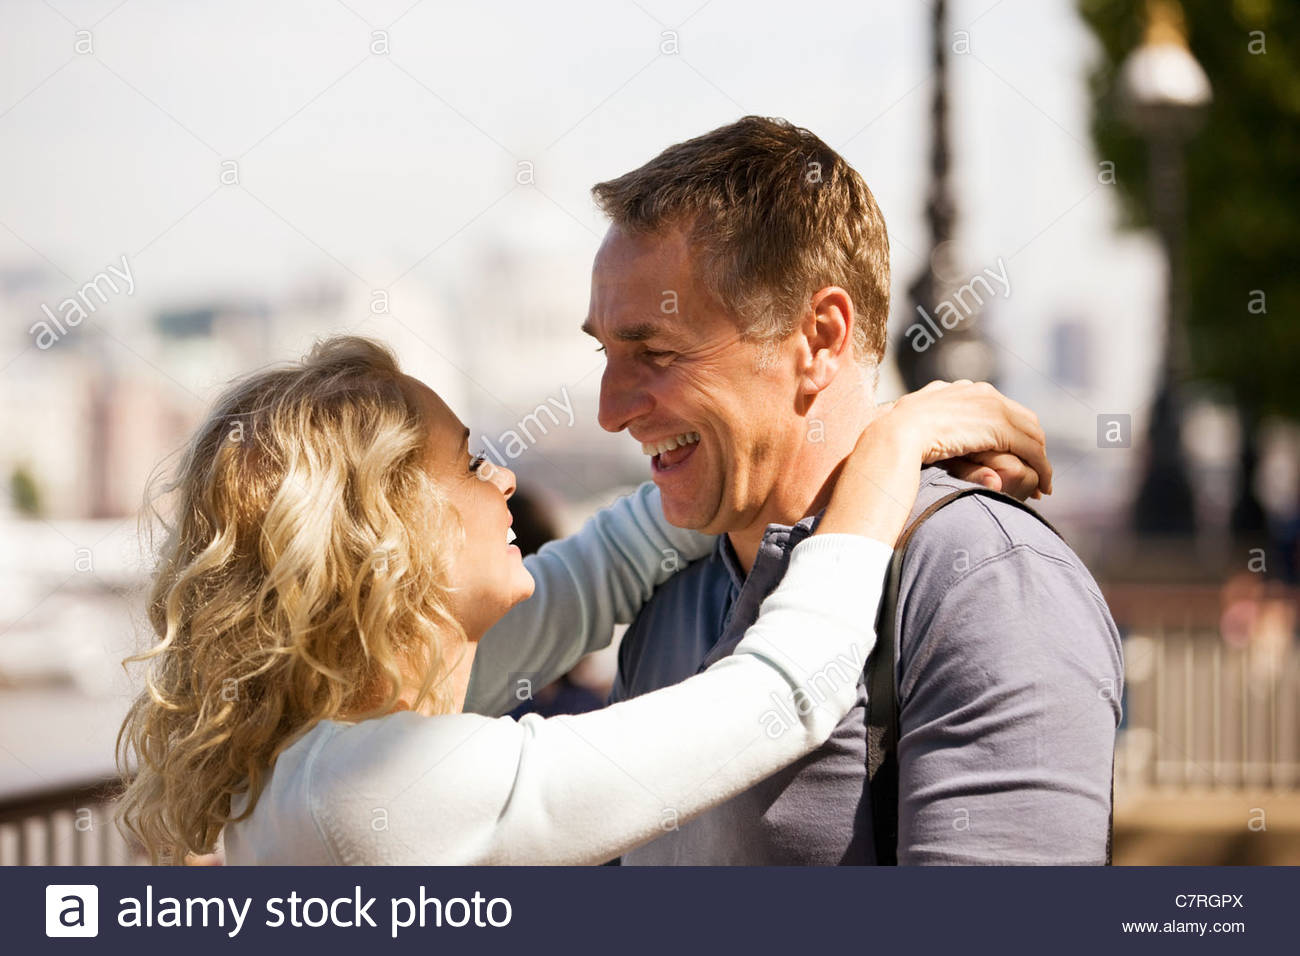 Portrait of a middle-aged couple next to the river Thames embracing - Stock Image